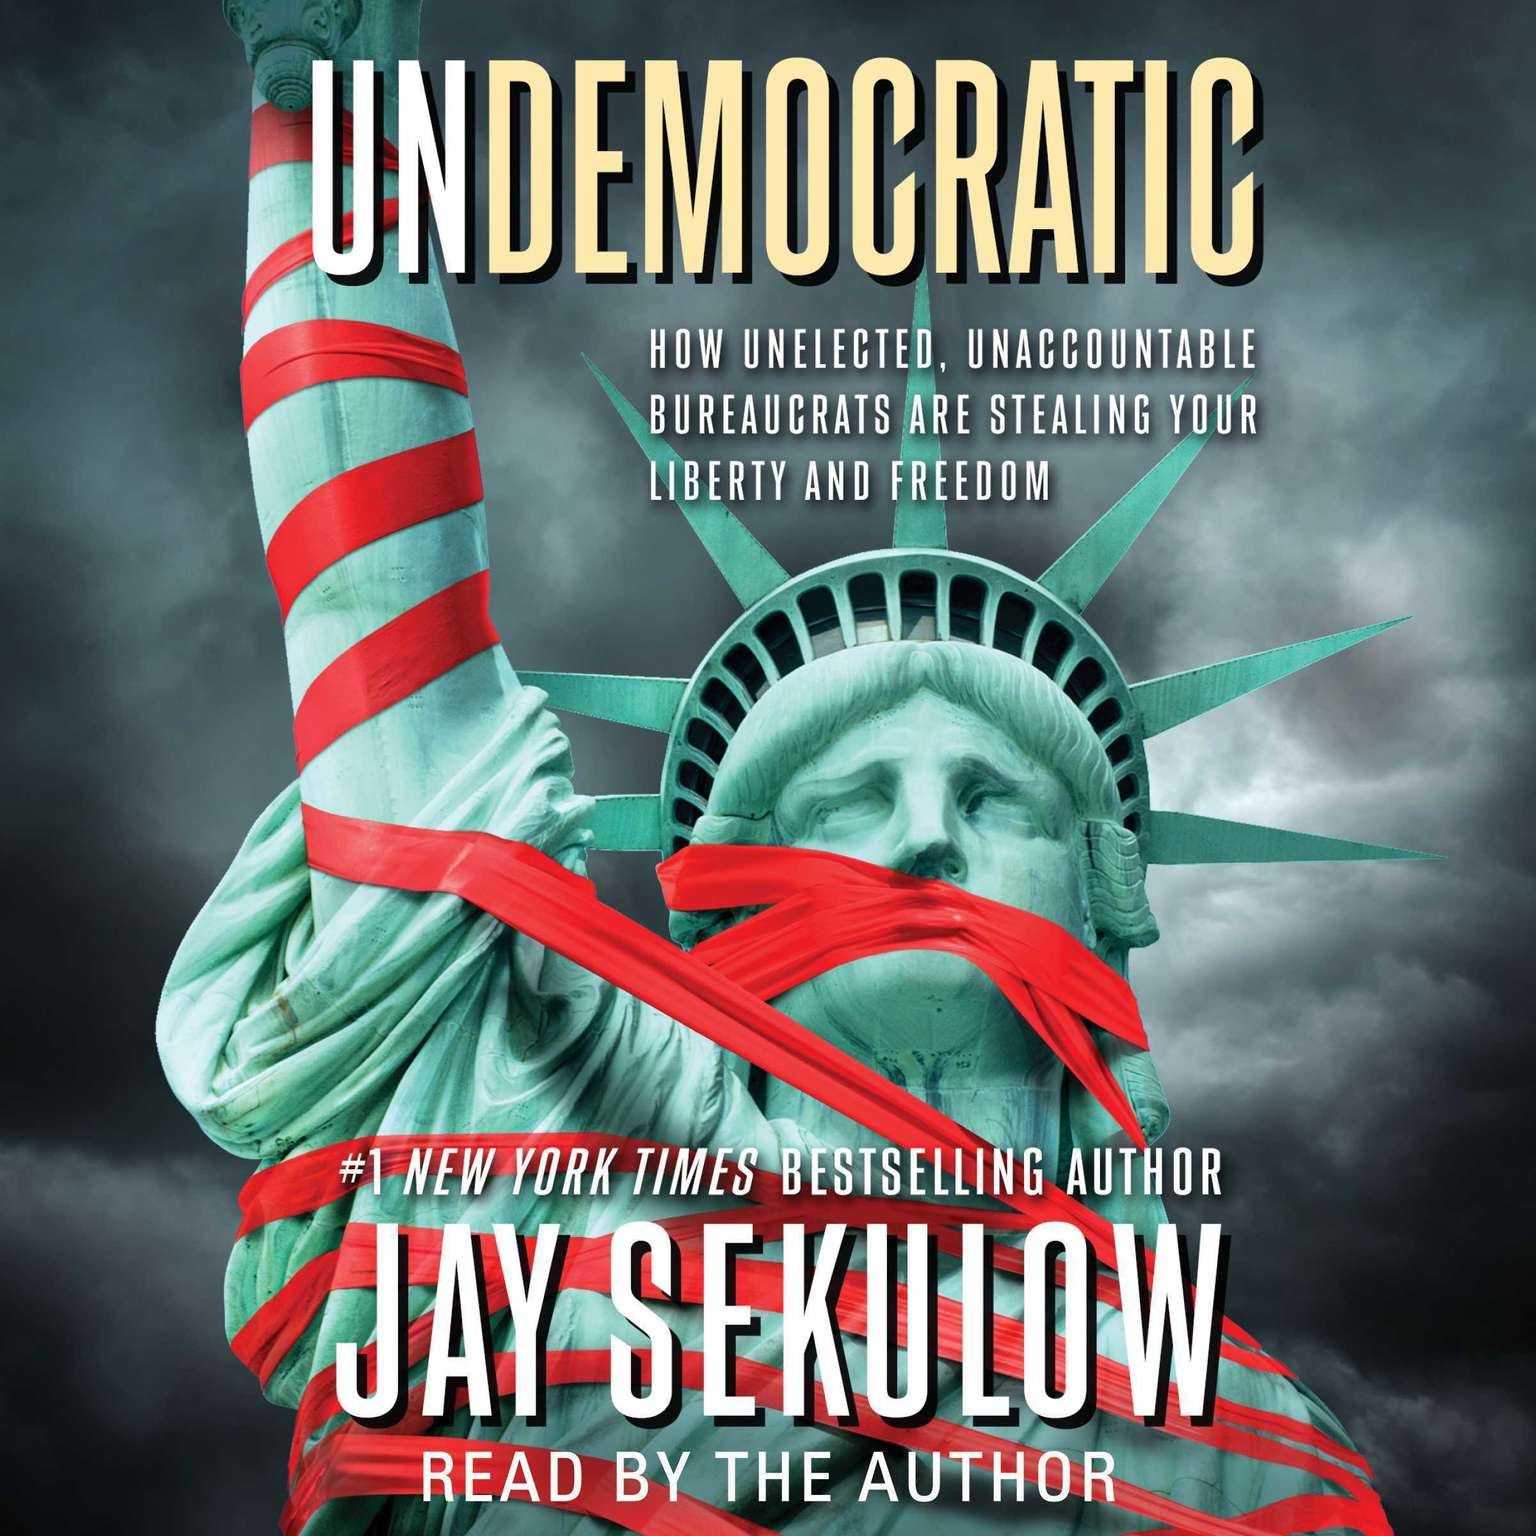 Undemocratic: How Unelected, Unaccountable Bureaucrats Are Stealing Your Liberty and Freedom Audiobook, by Jay Sekulow